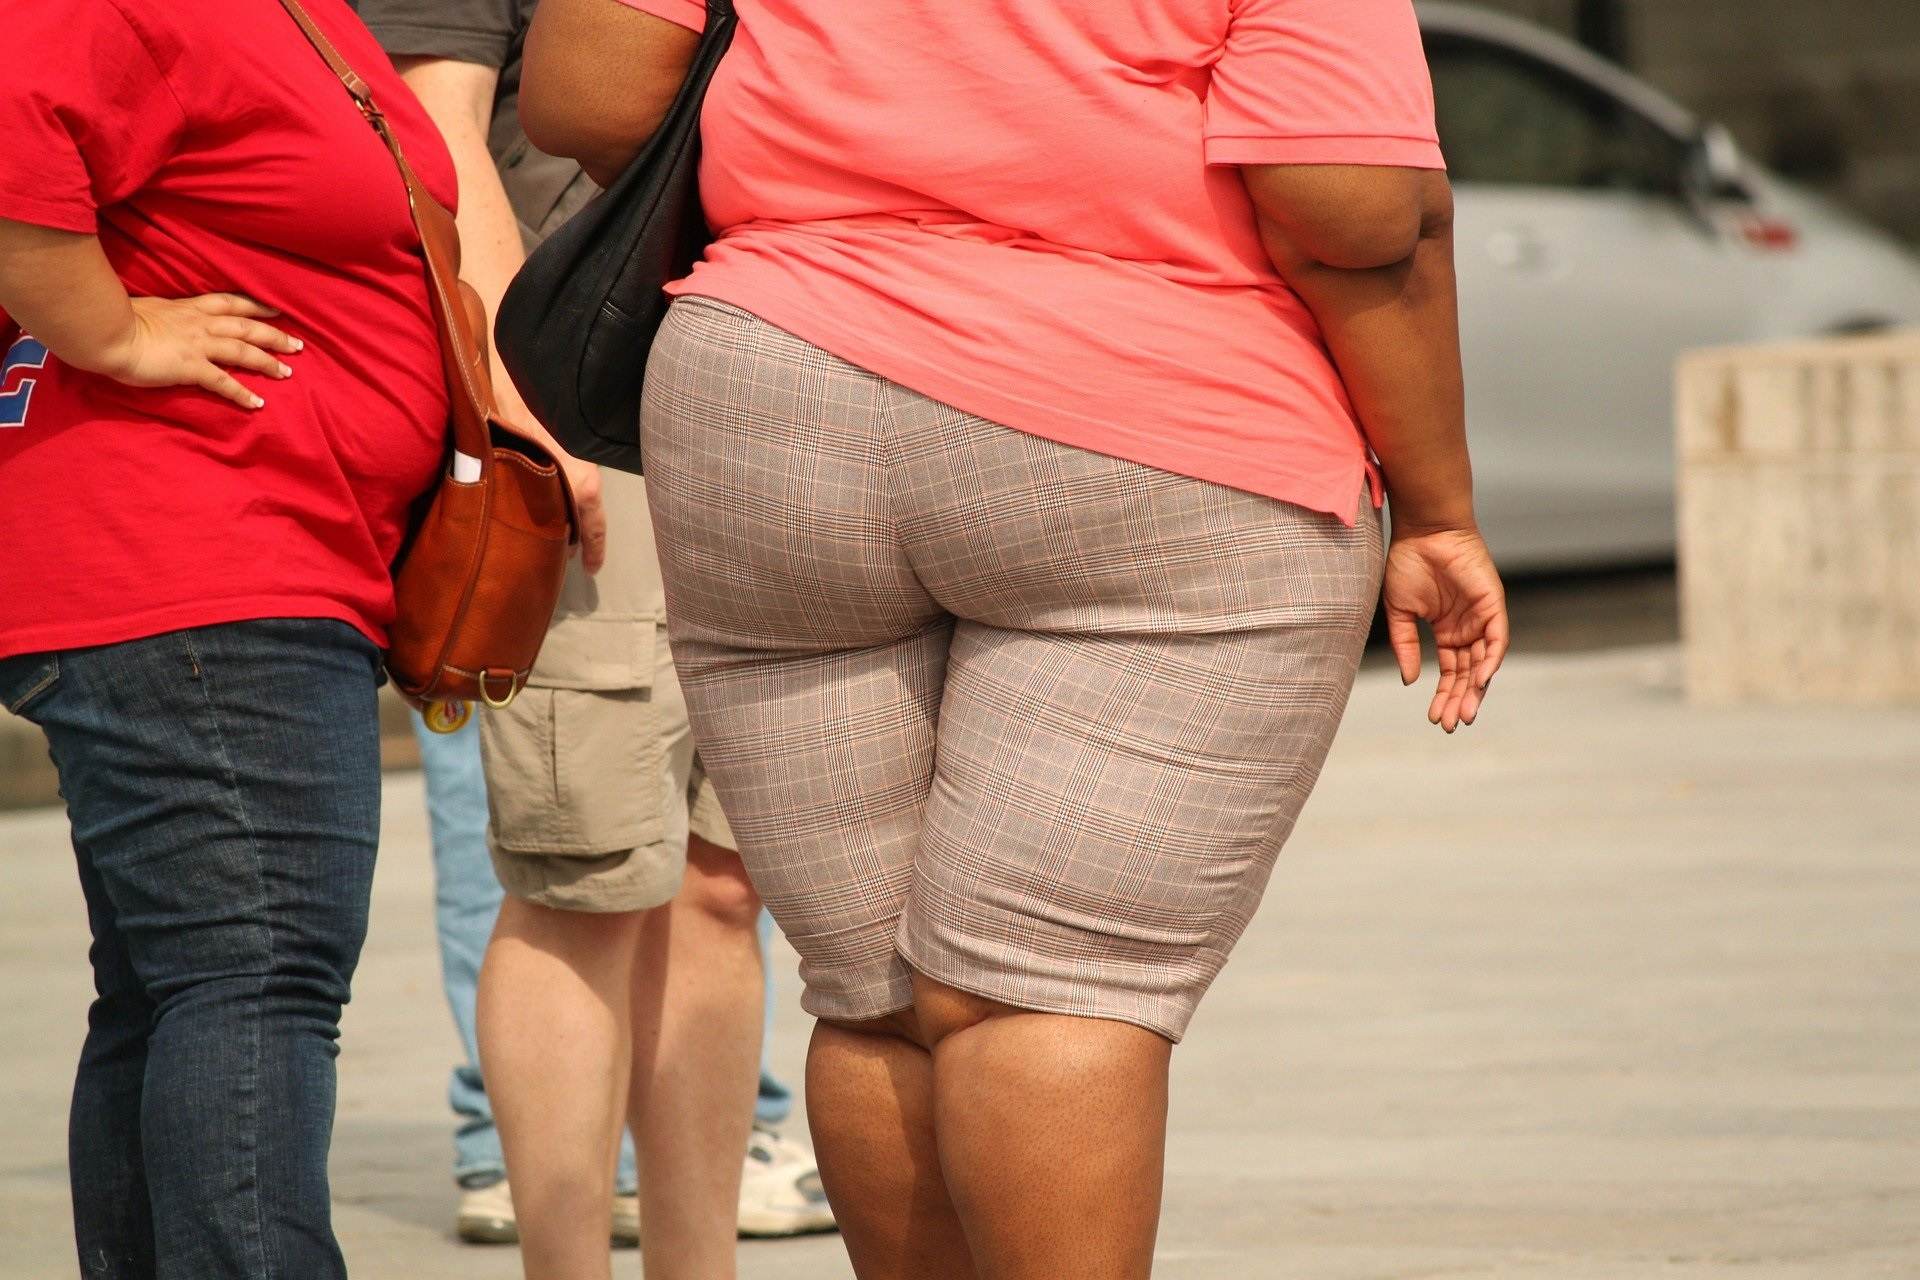 Obesity May Be A Side Effect of PTSD In Women, Study Finds